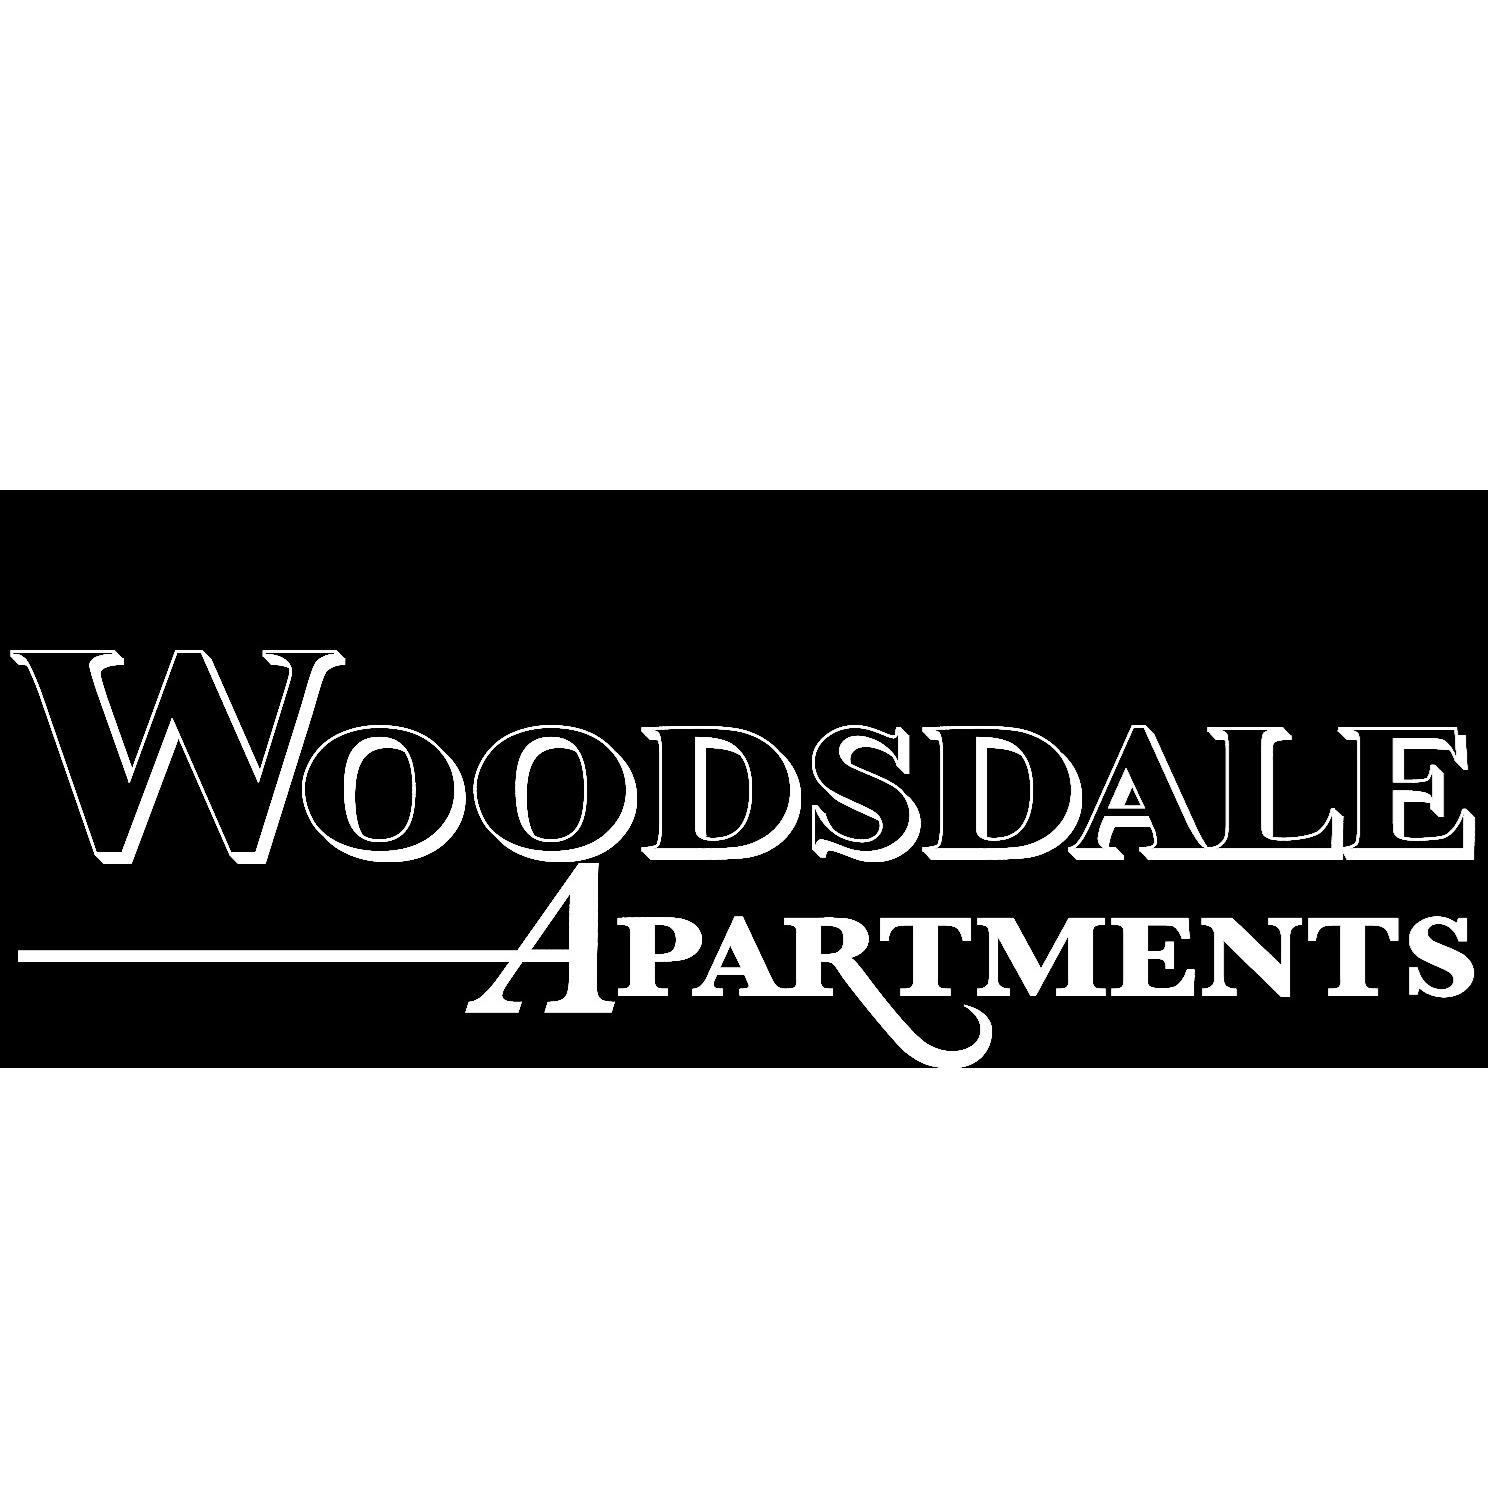 Woodsdale Apartments